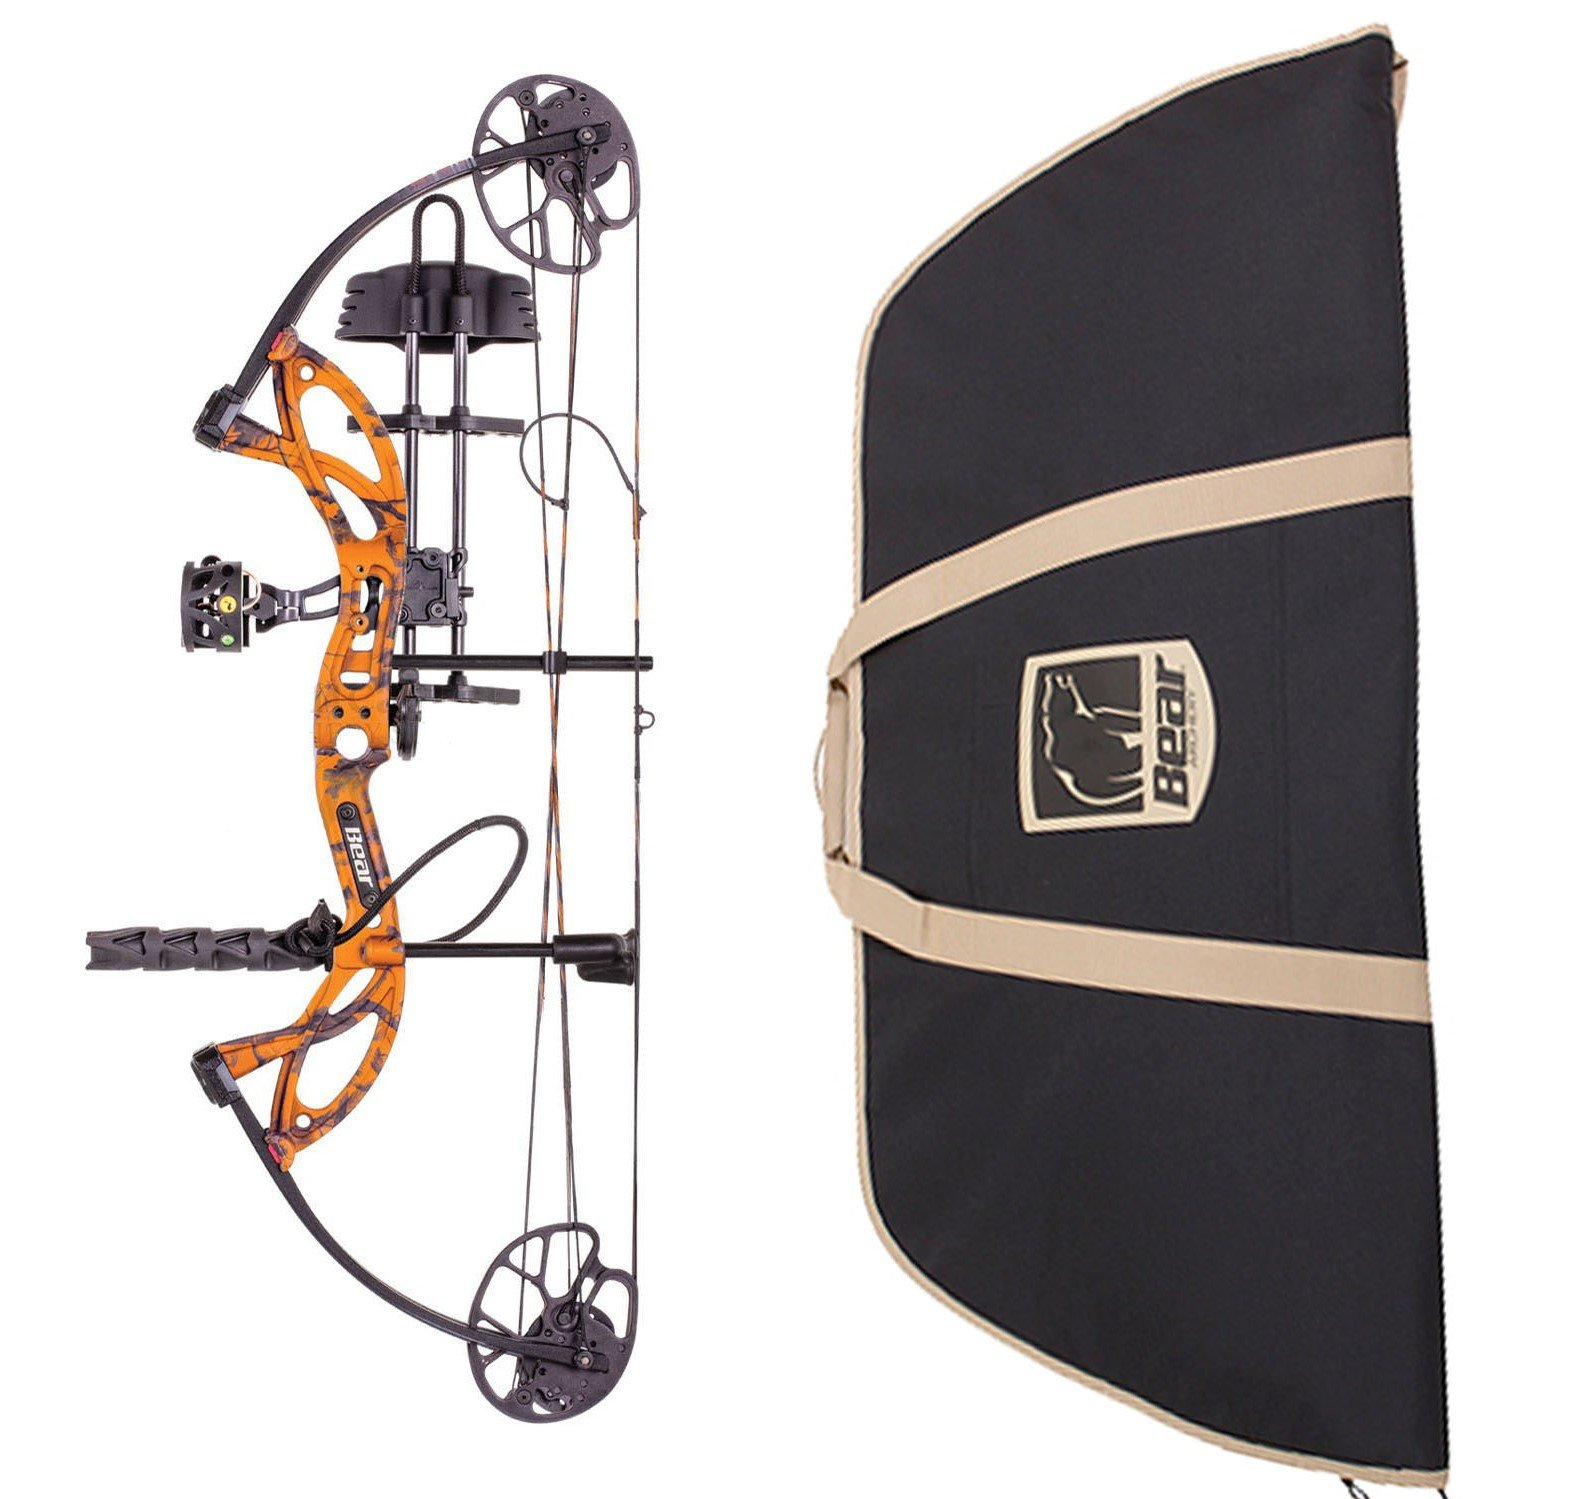 Bear Archery Cruzer G2 Compound Bow RTH Package and Soft Bow Case, Orange, Right Hand, 5-70#